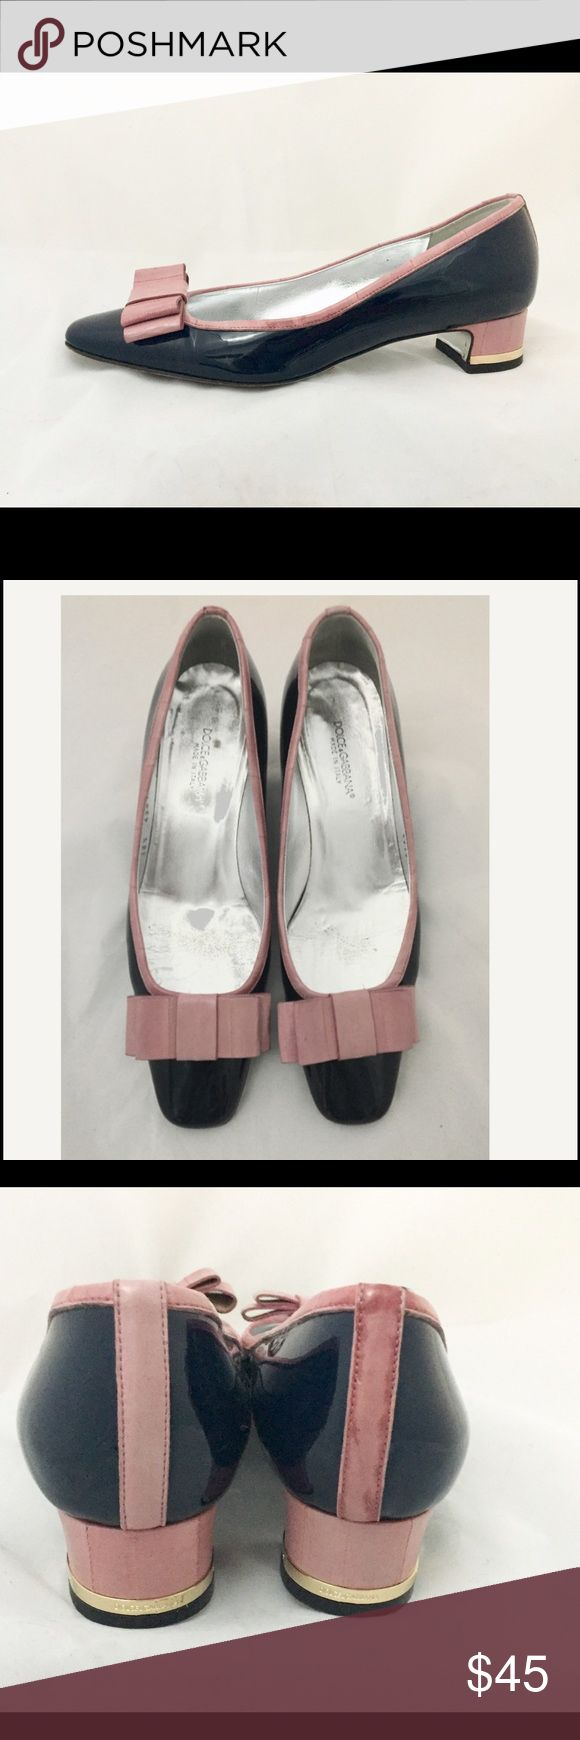 Selling this Dolce and Gabbana navy patent shoes with pink bows in my Poshmark closet! My username is: angelspace. #shopmycloset #poshmark #fashion #shopping #style #forsale #Dolce & Gabbana #Shoes